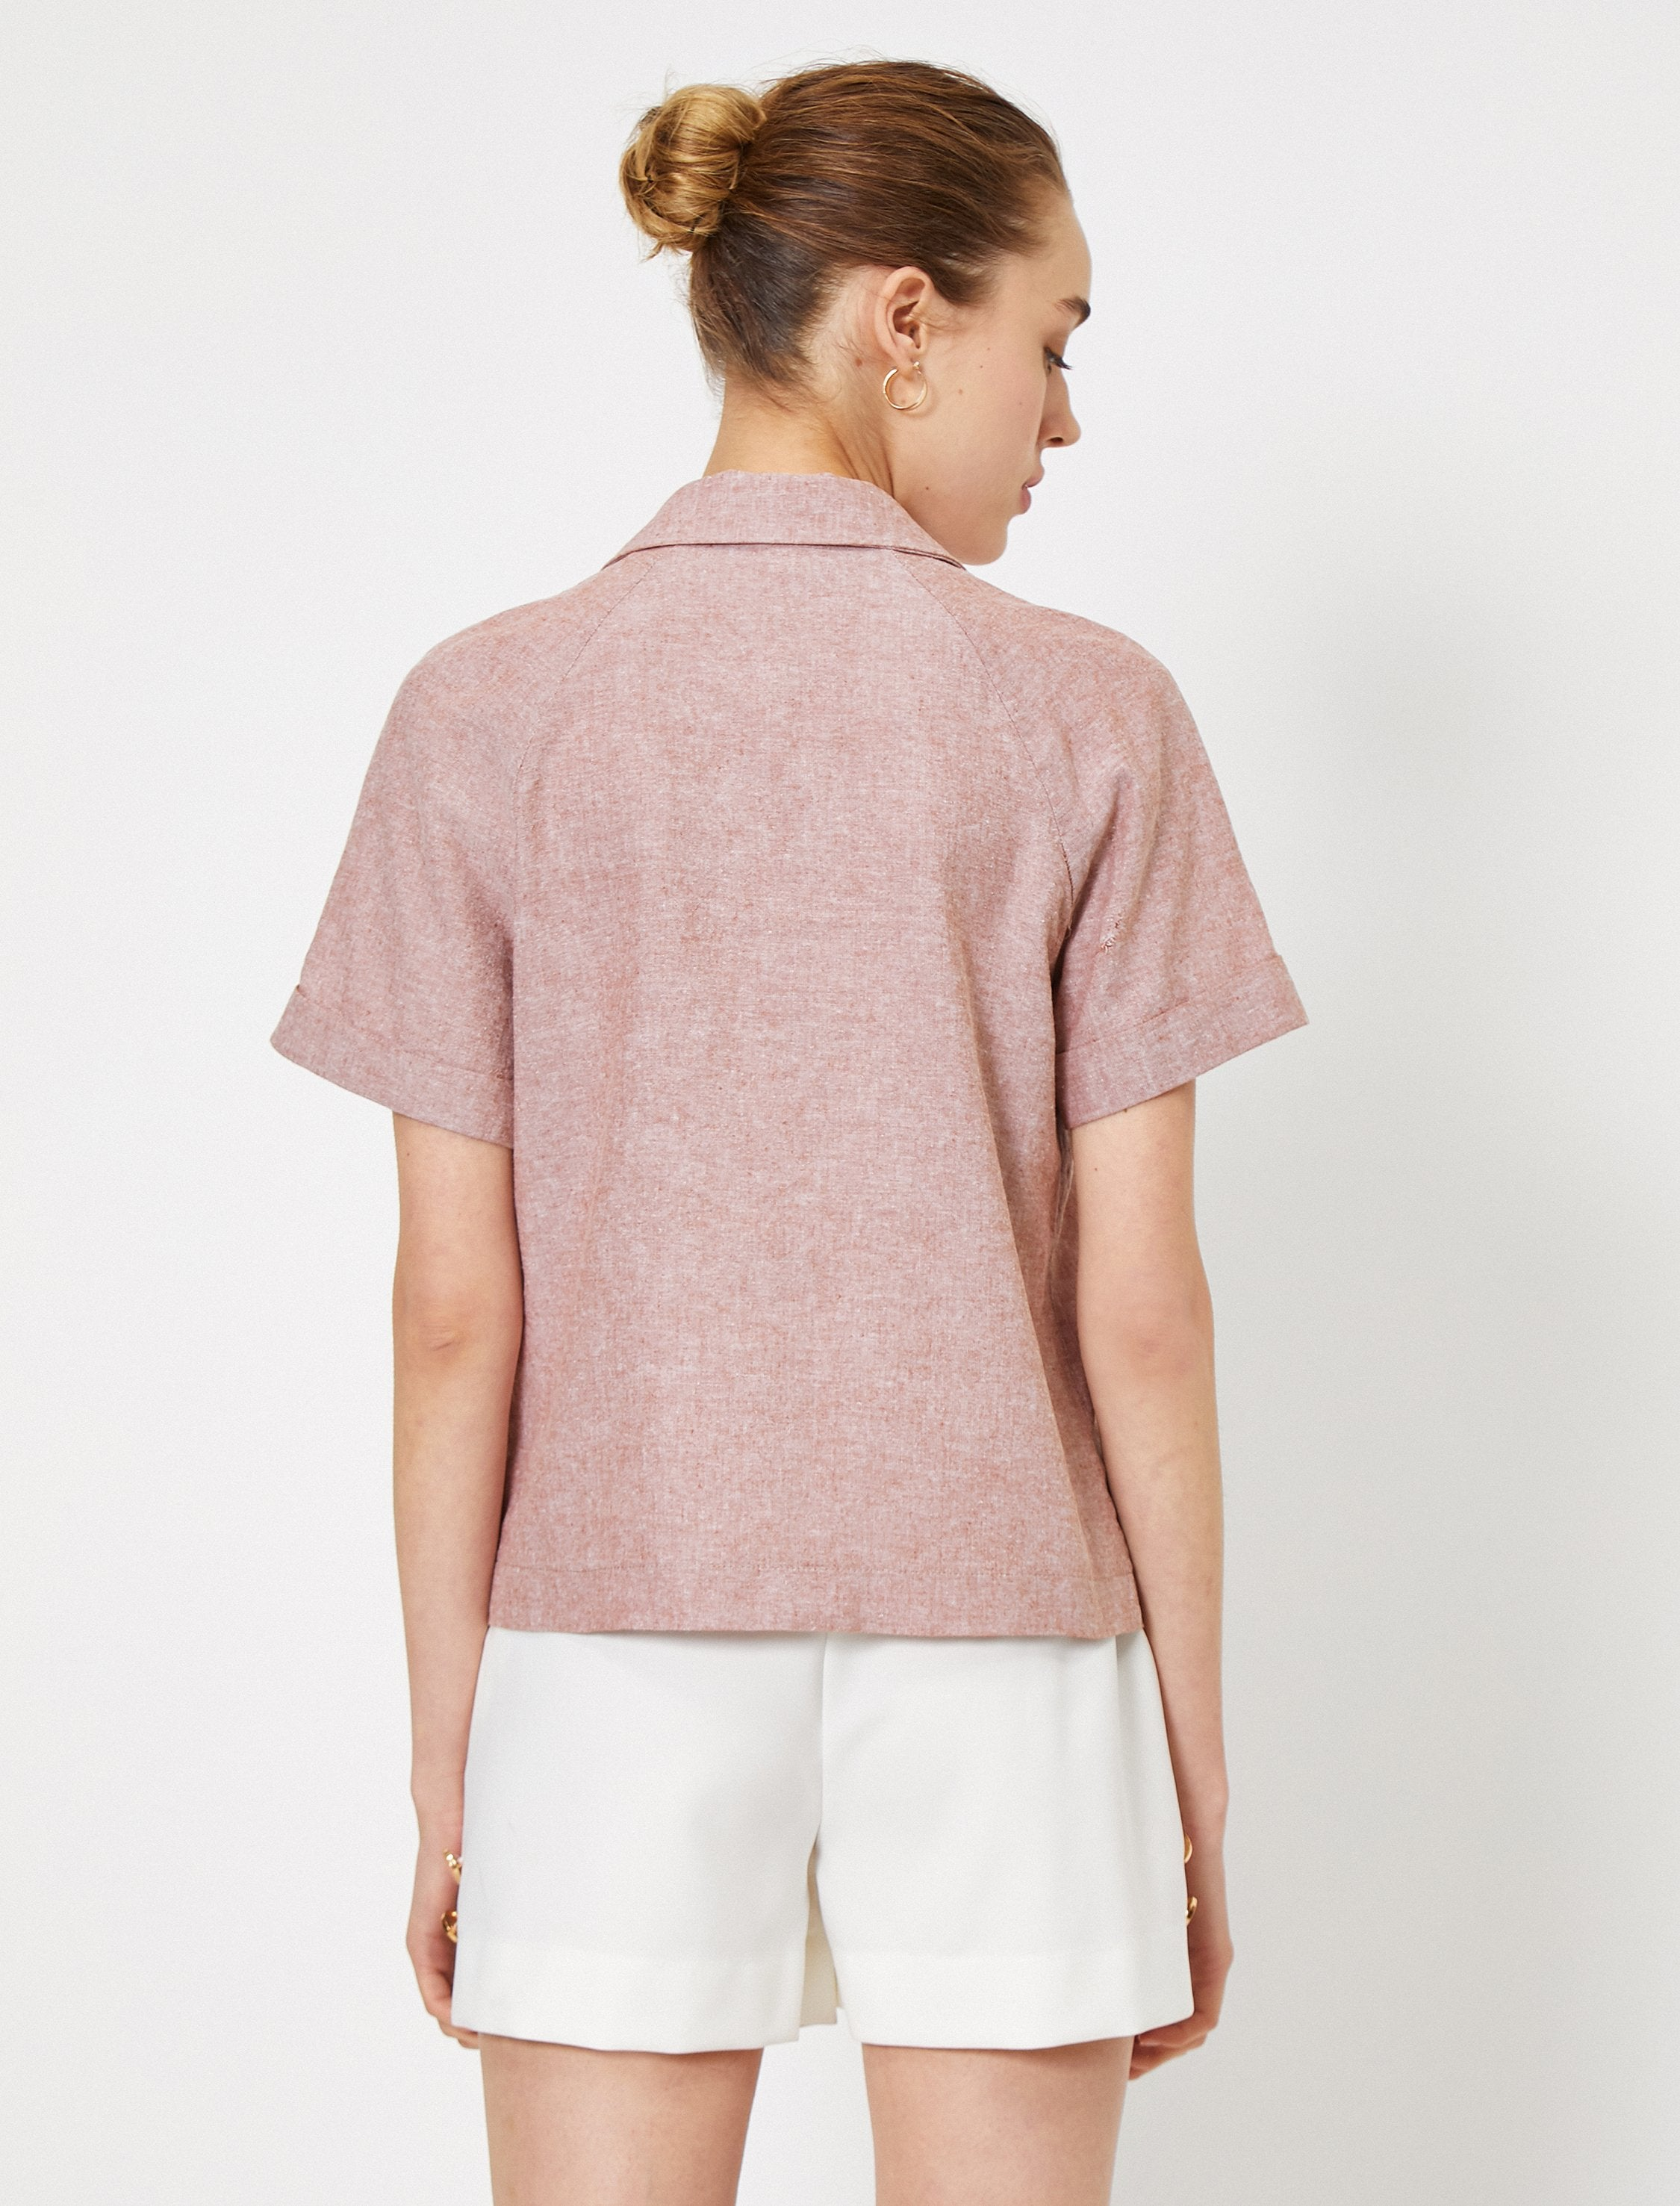 Utility Short Sleeve Shirt in Clay